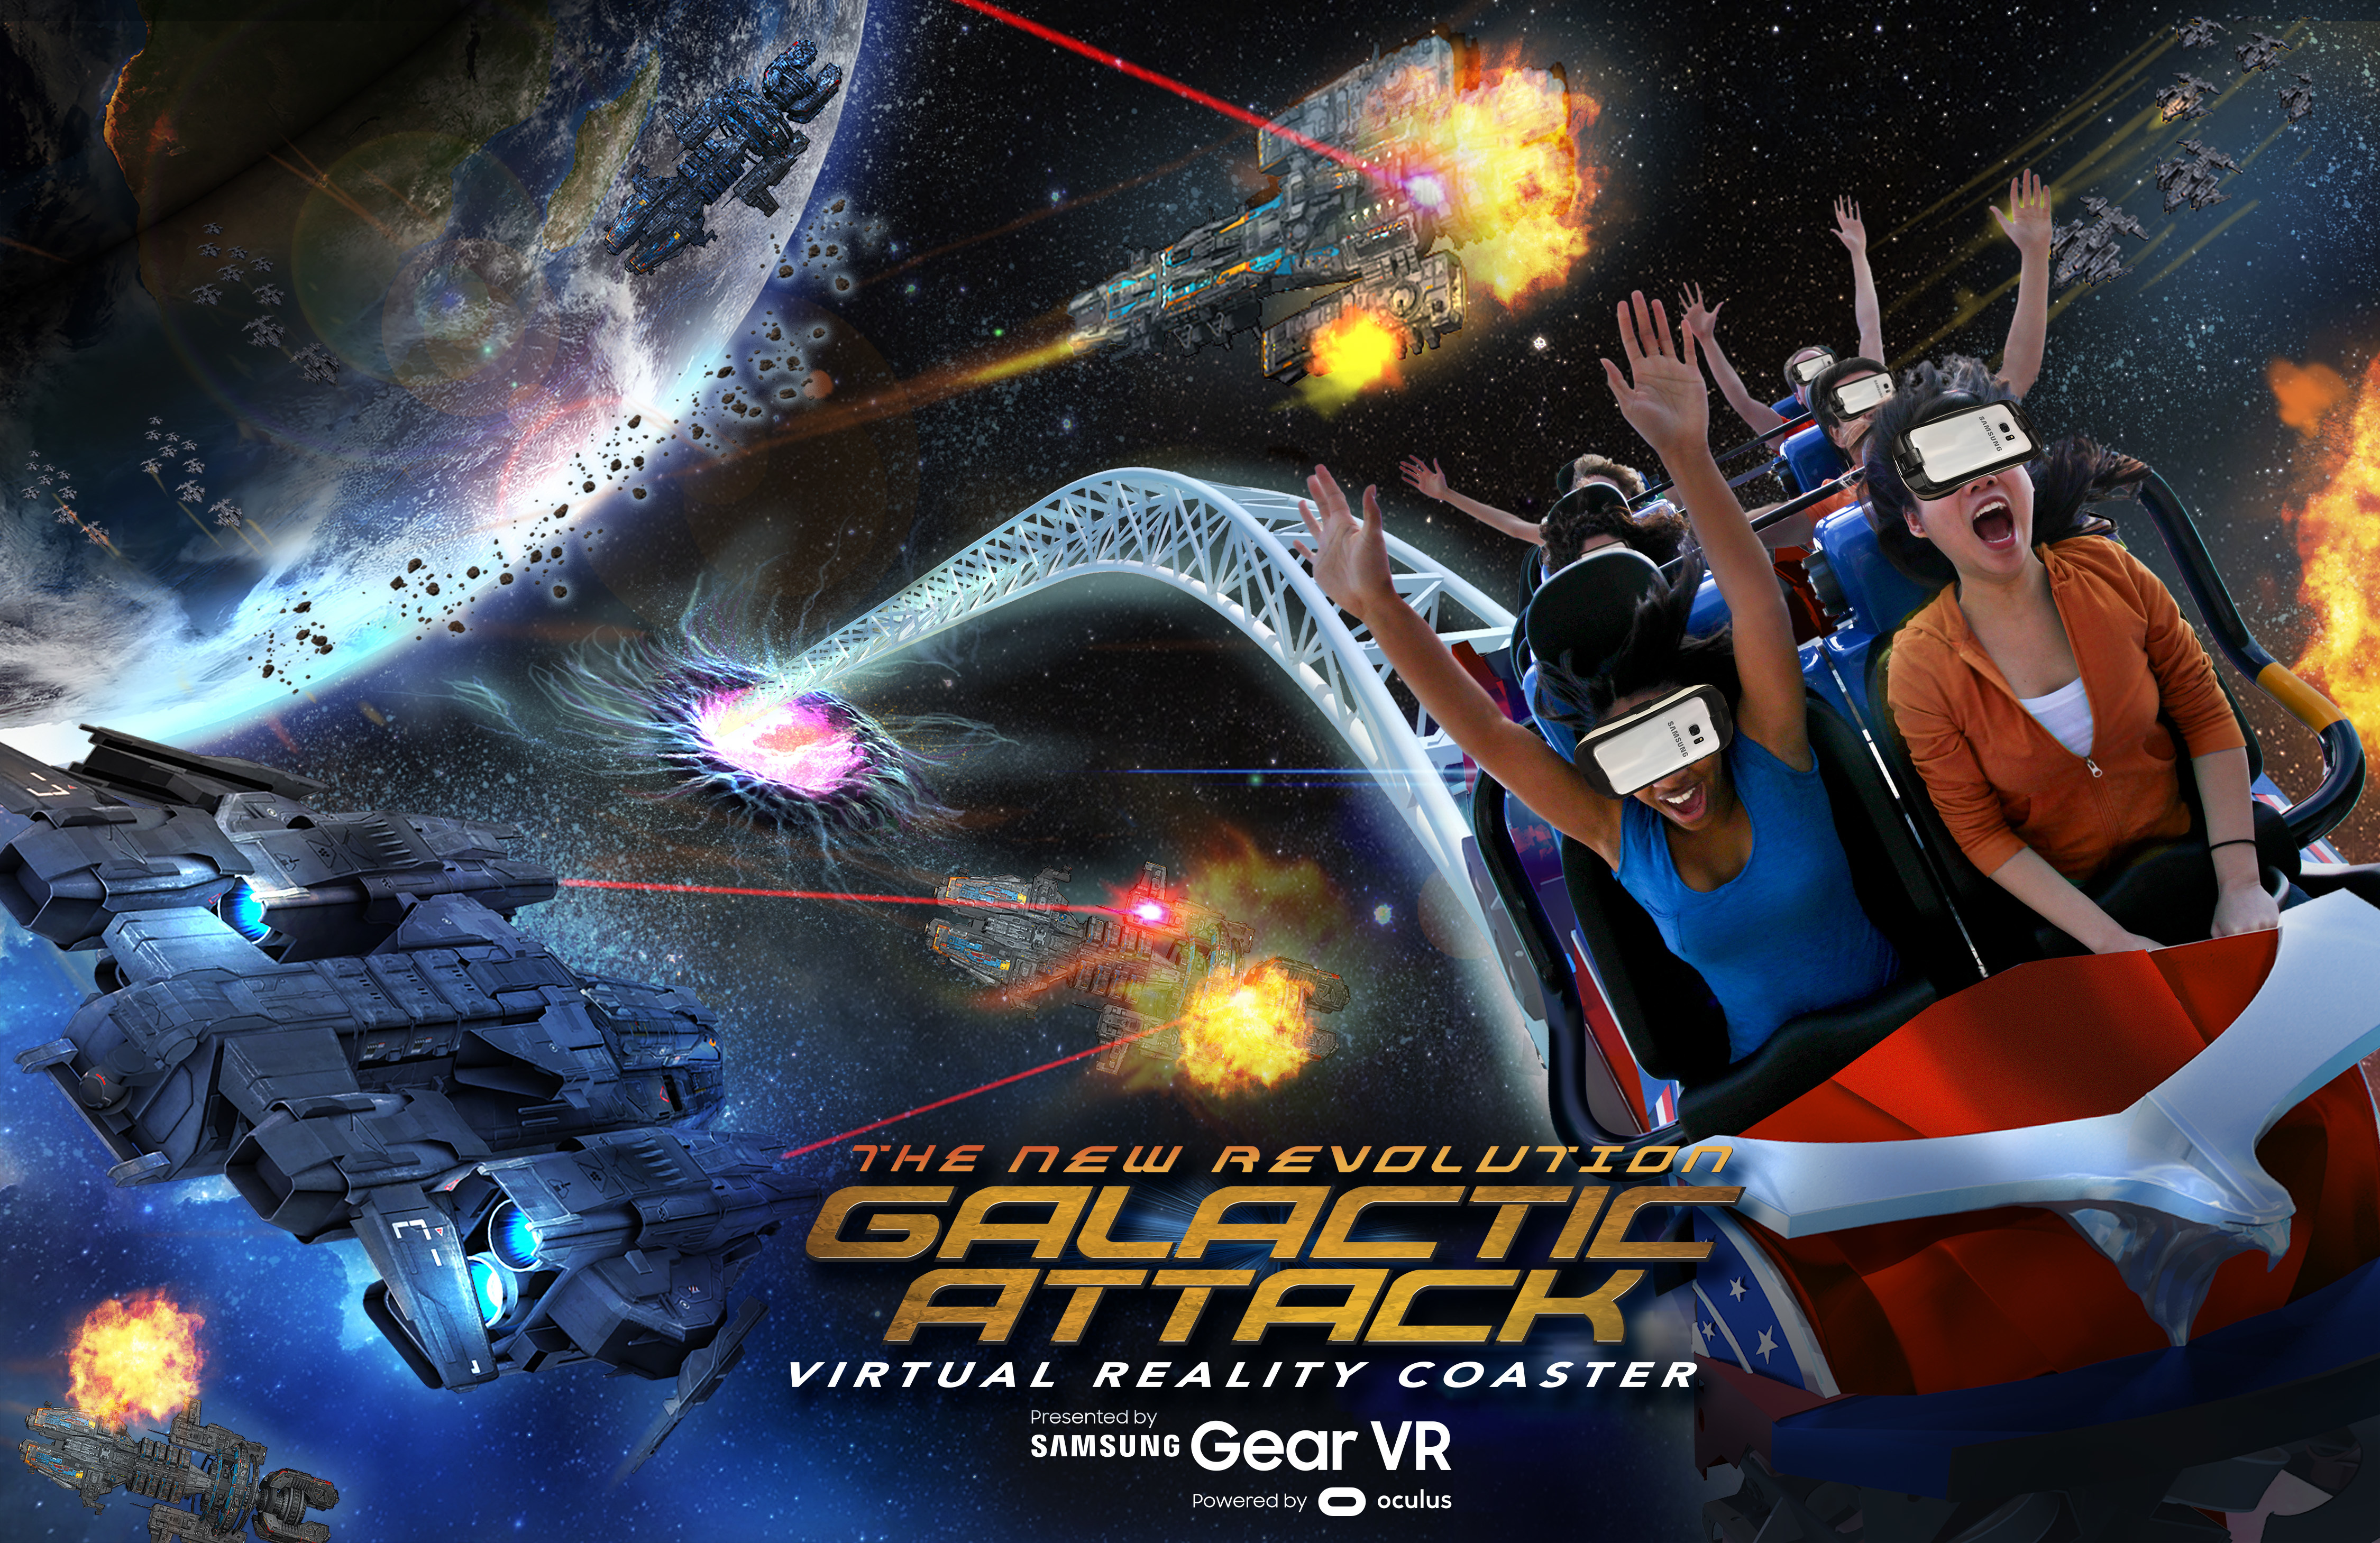 Six Flags And Samsung Announce Renewed Collaboration On Virtual Reality Roller Coasters Samsung Us Newsroom